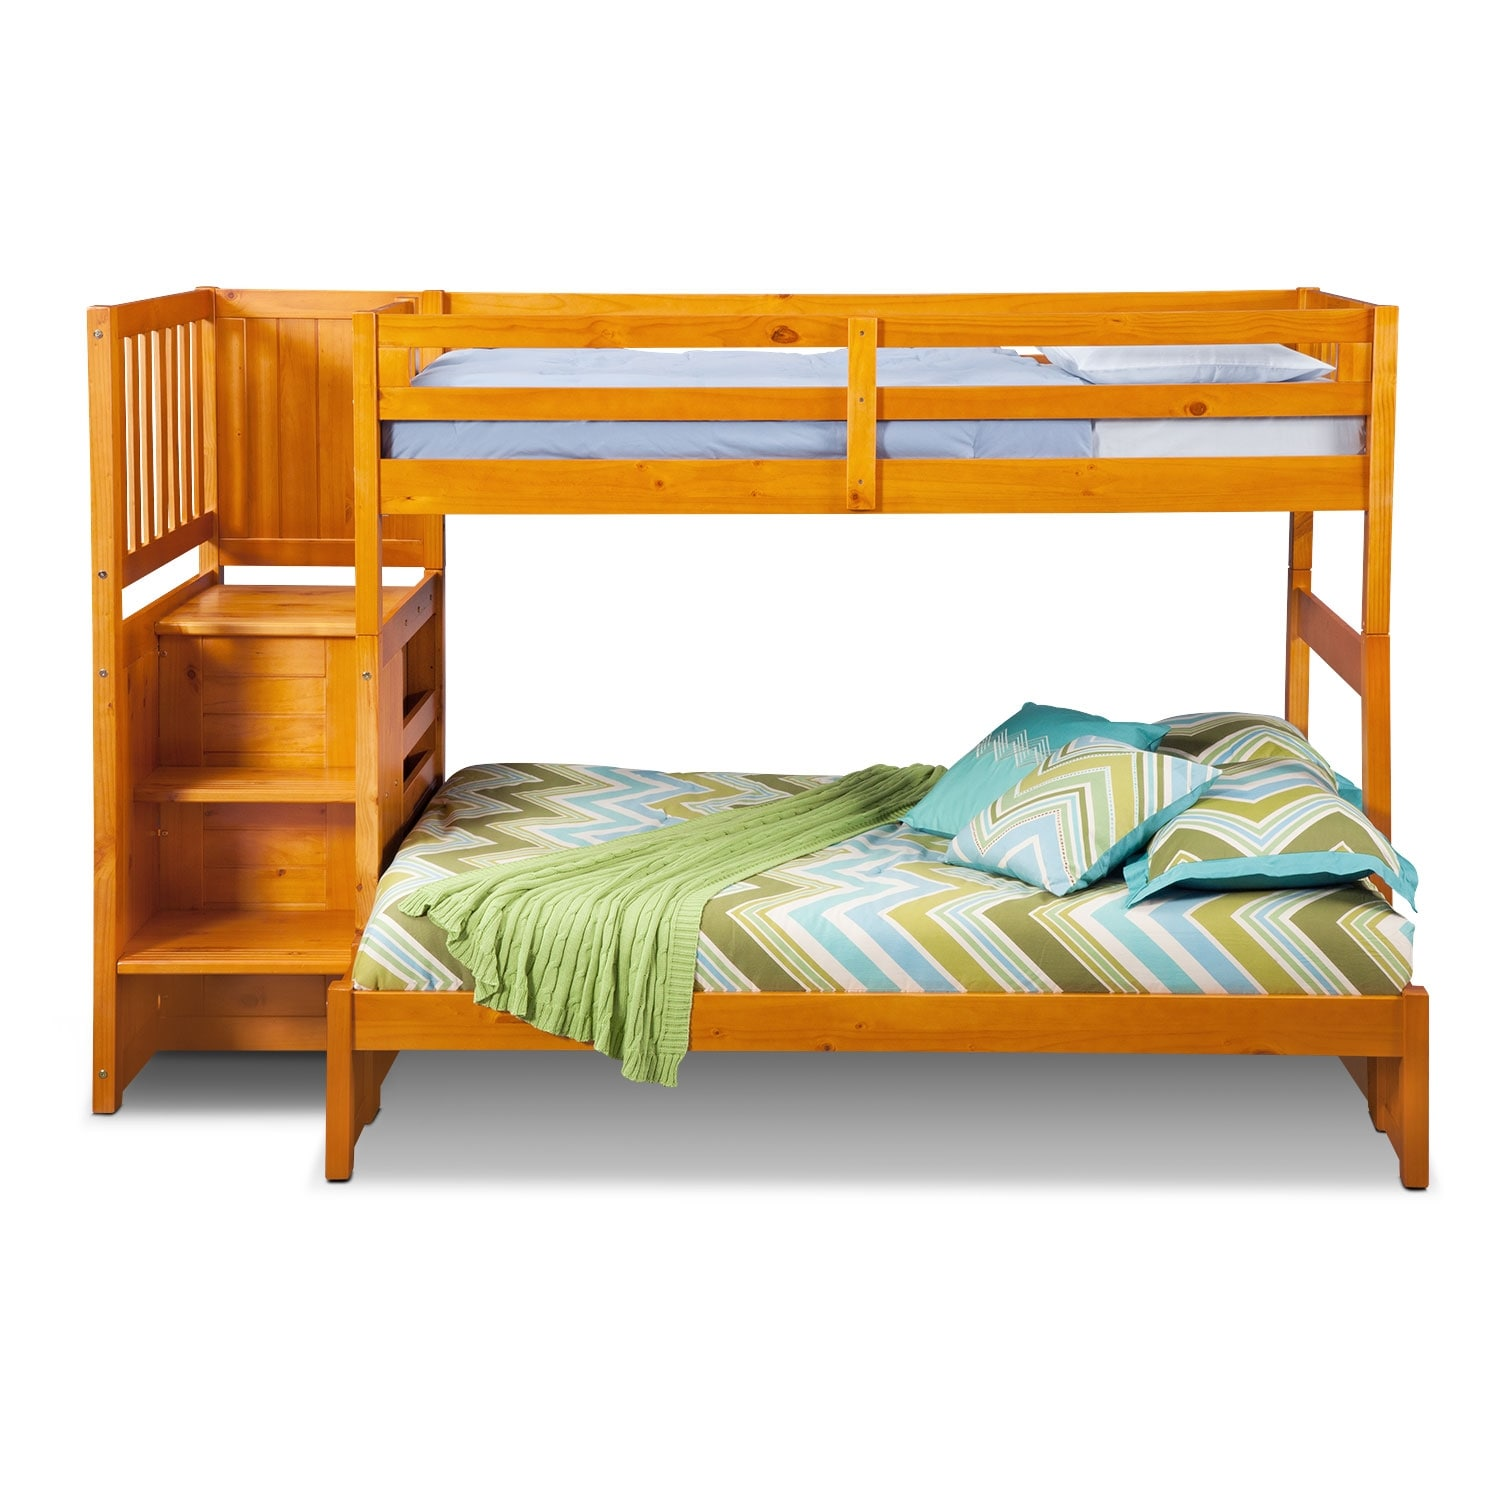 Ranger pine twin full bunk bed w stairs and 4 drawer storage value city furniture - Bunk bed with drawer steps ...